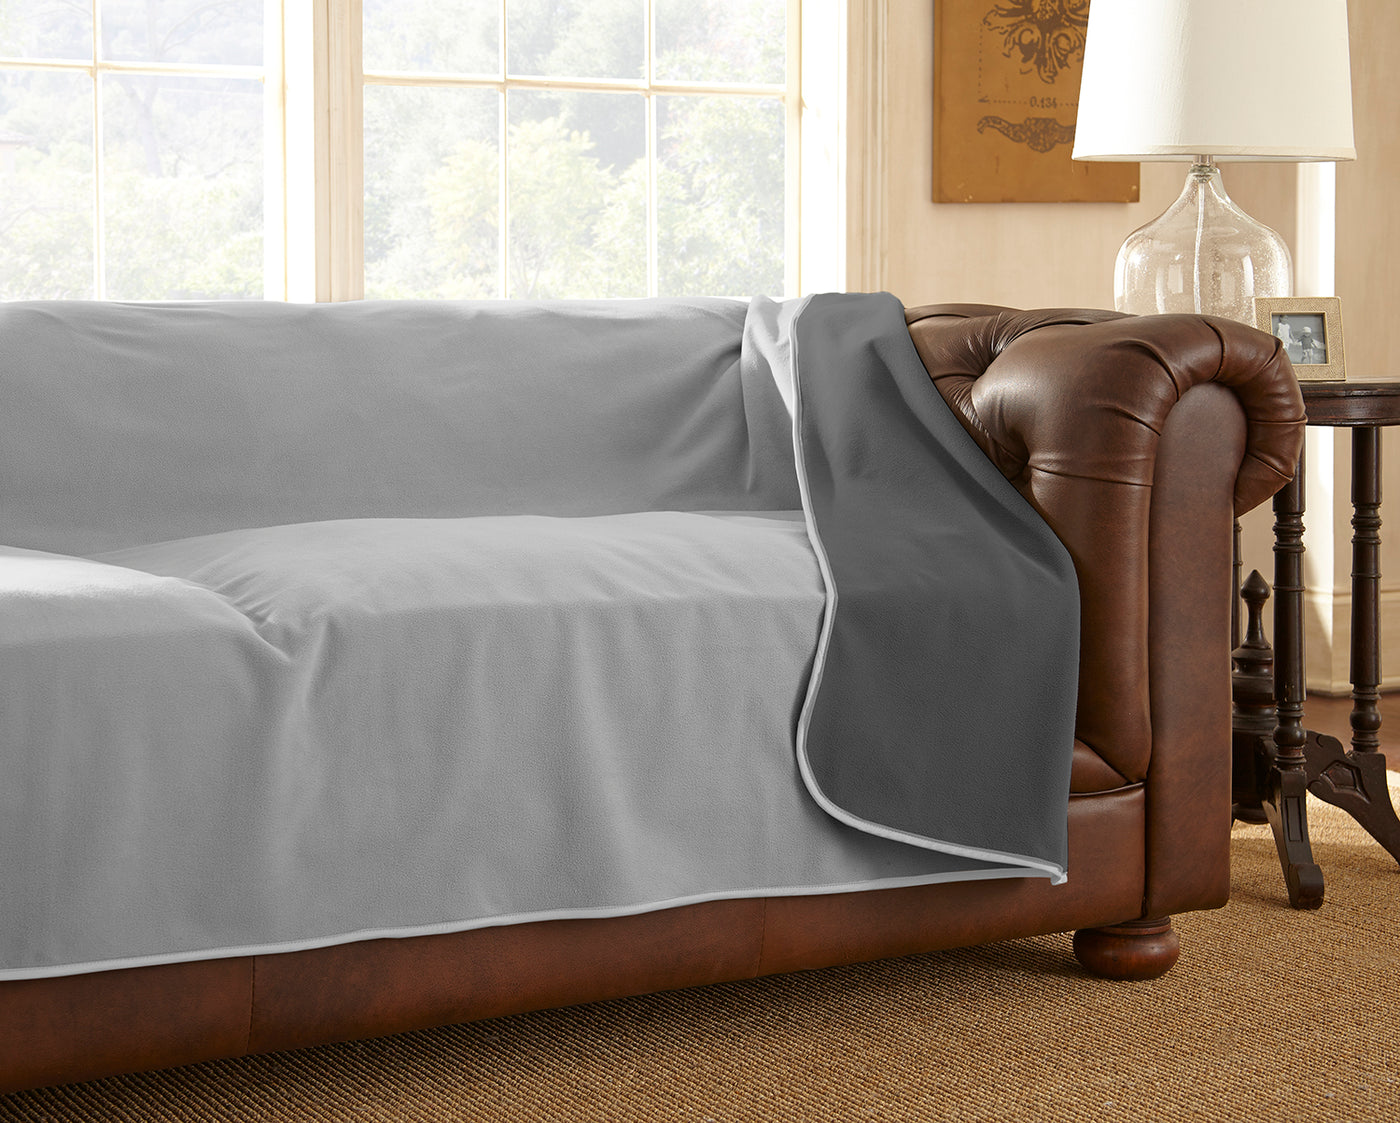 """King//Queen 90/""""X90/"""", B Mambe 100/% Waterproof Furniture Cover For Pets And People"""